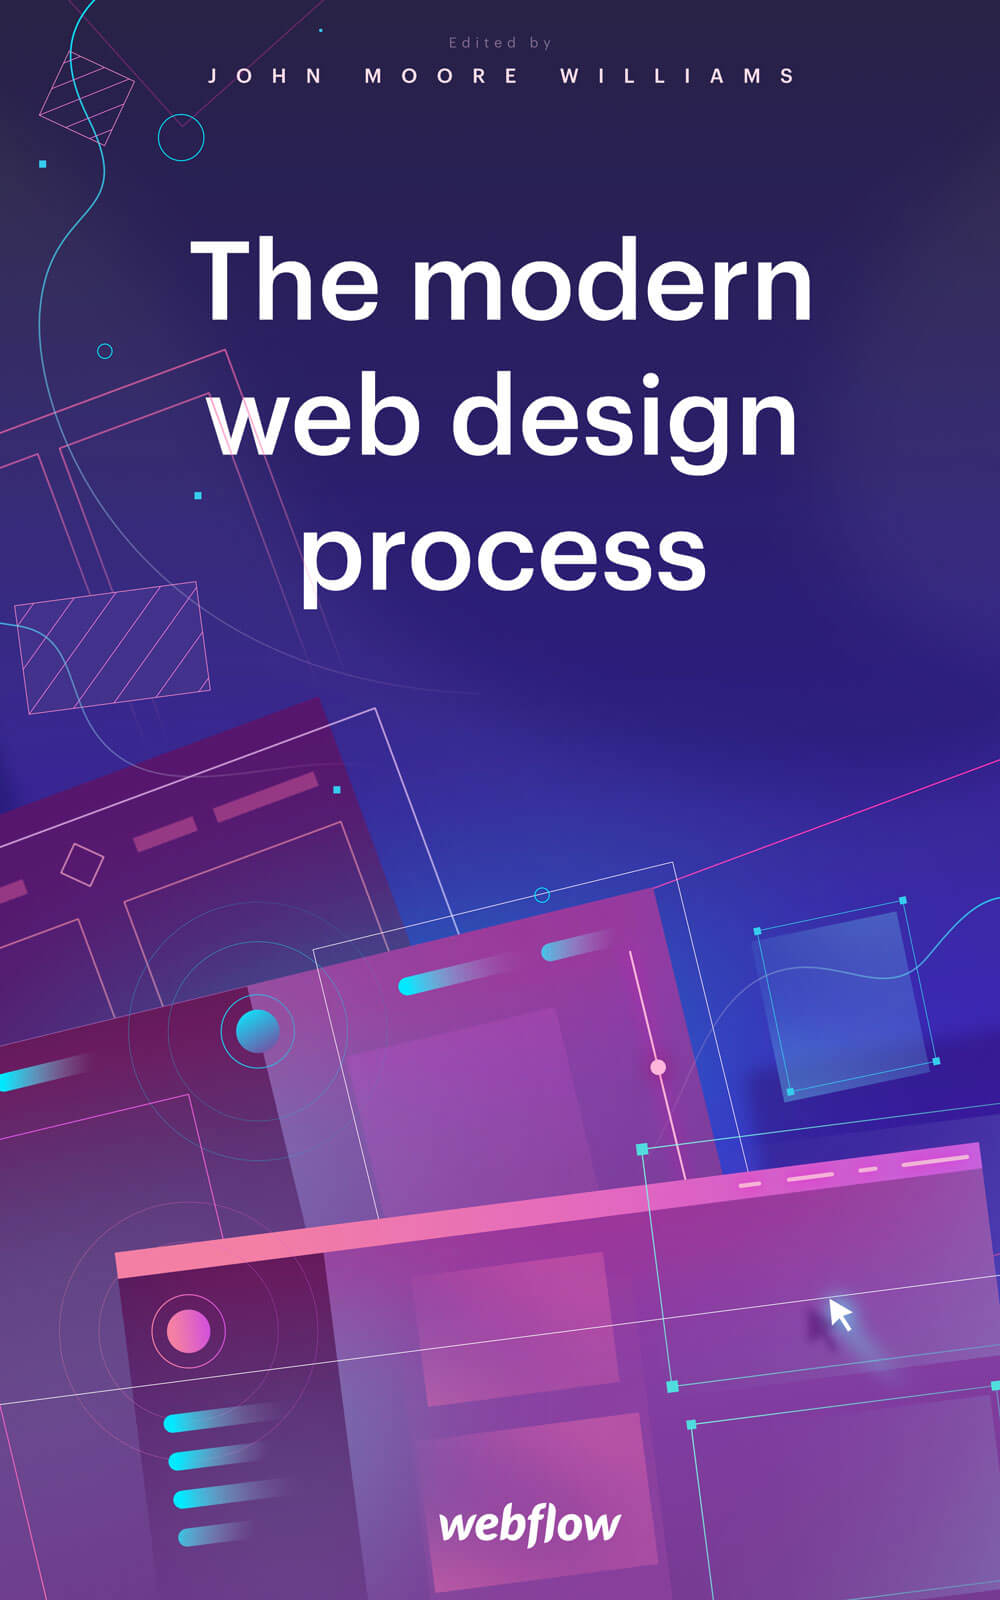 The modern web design process